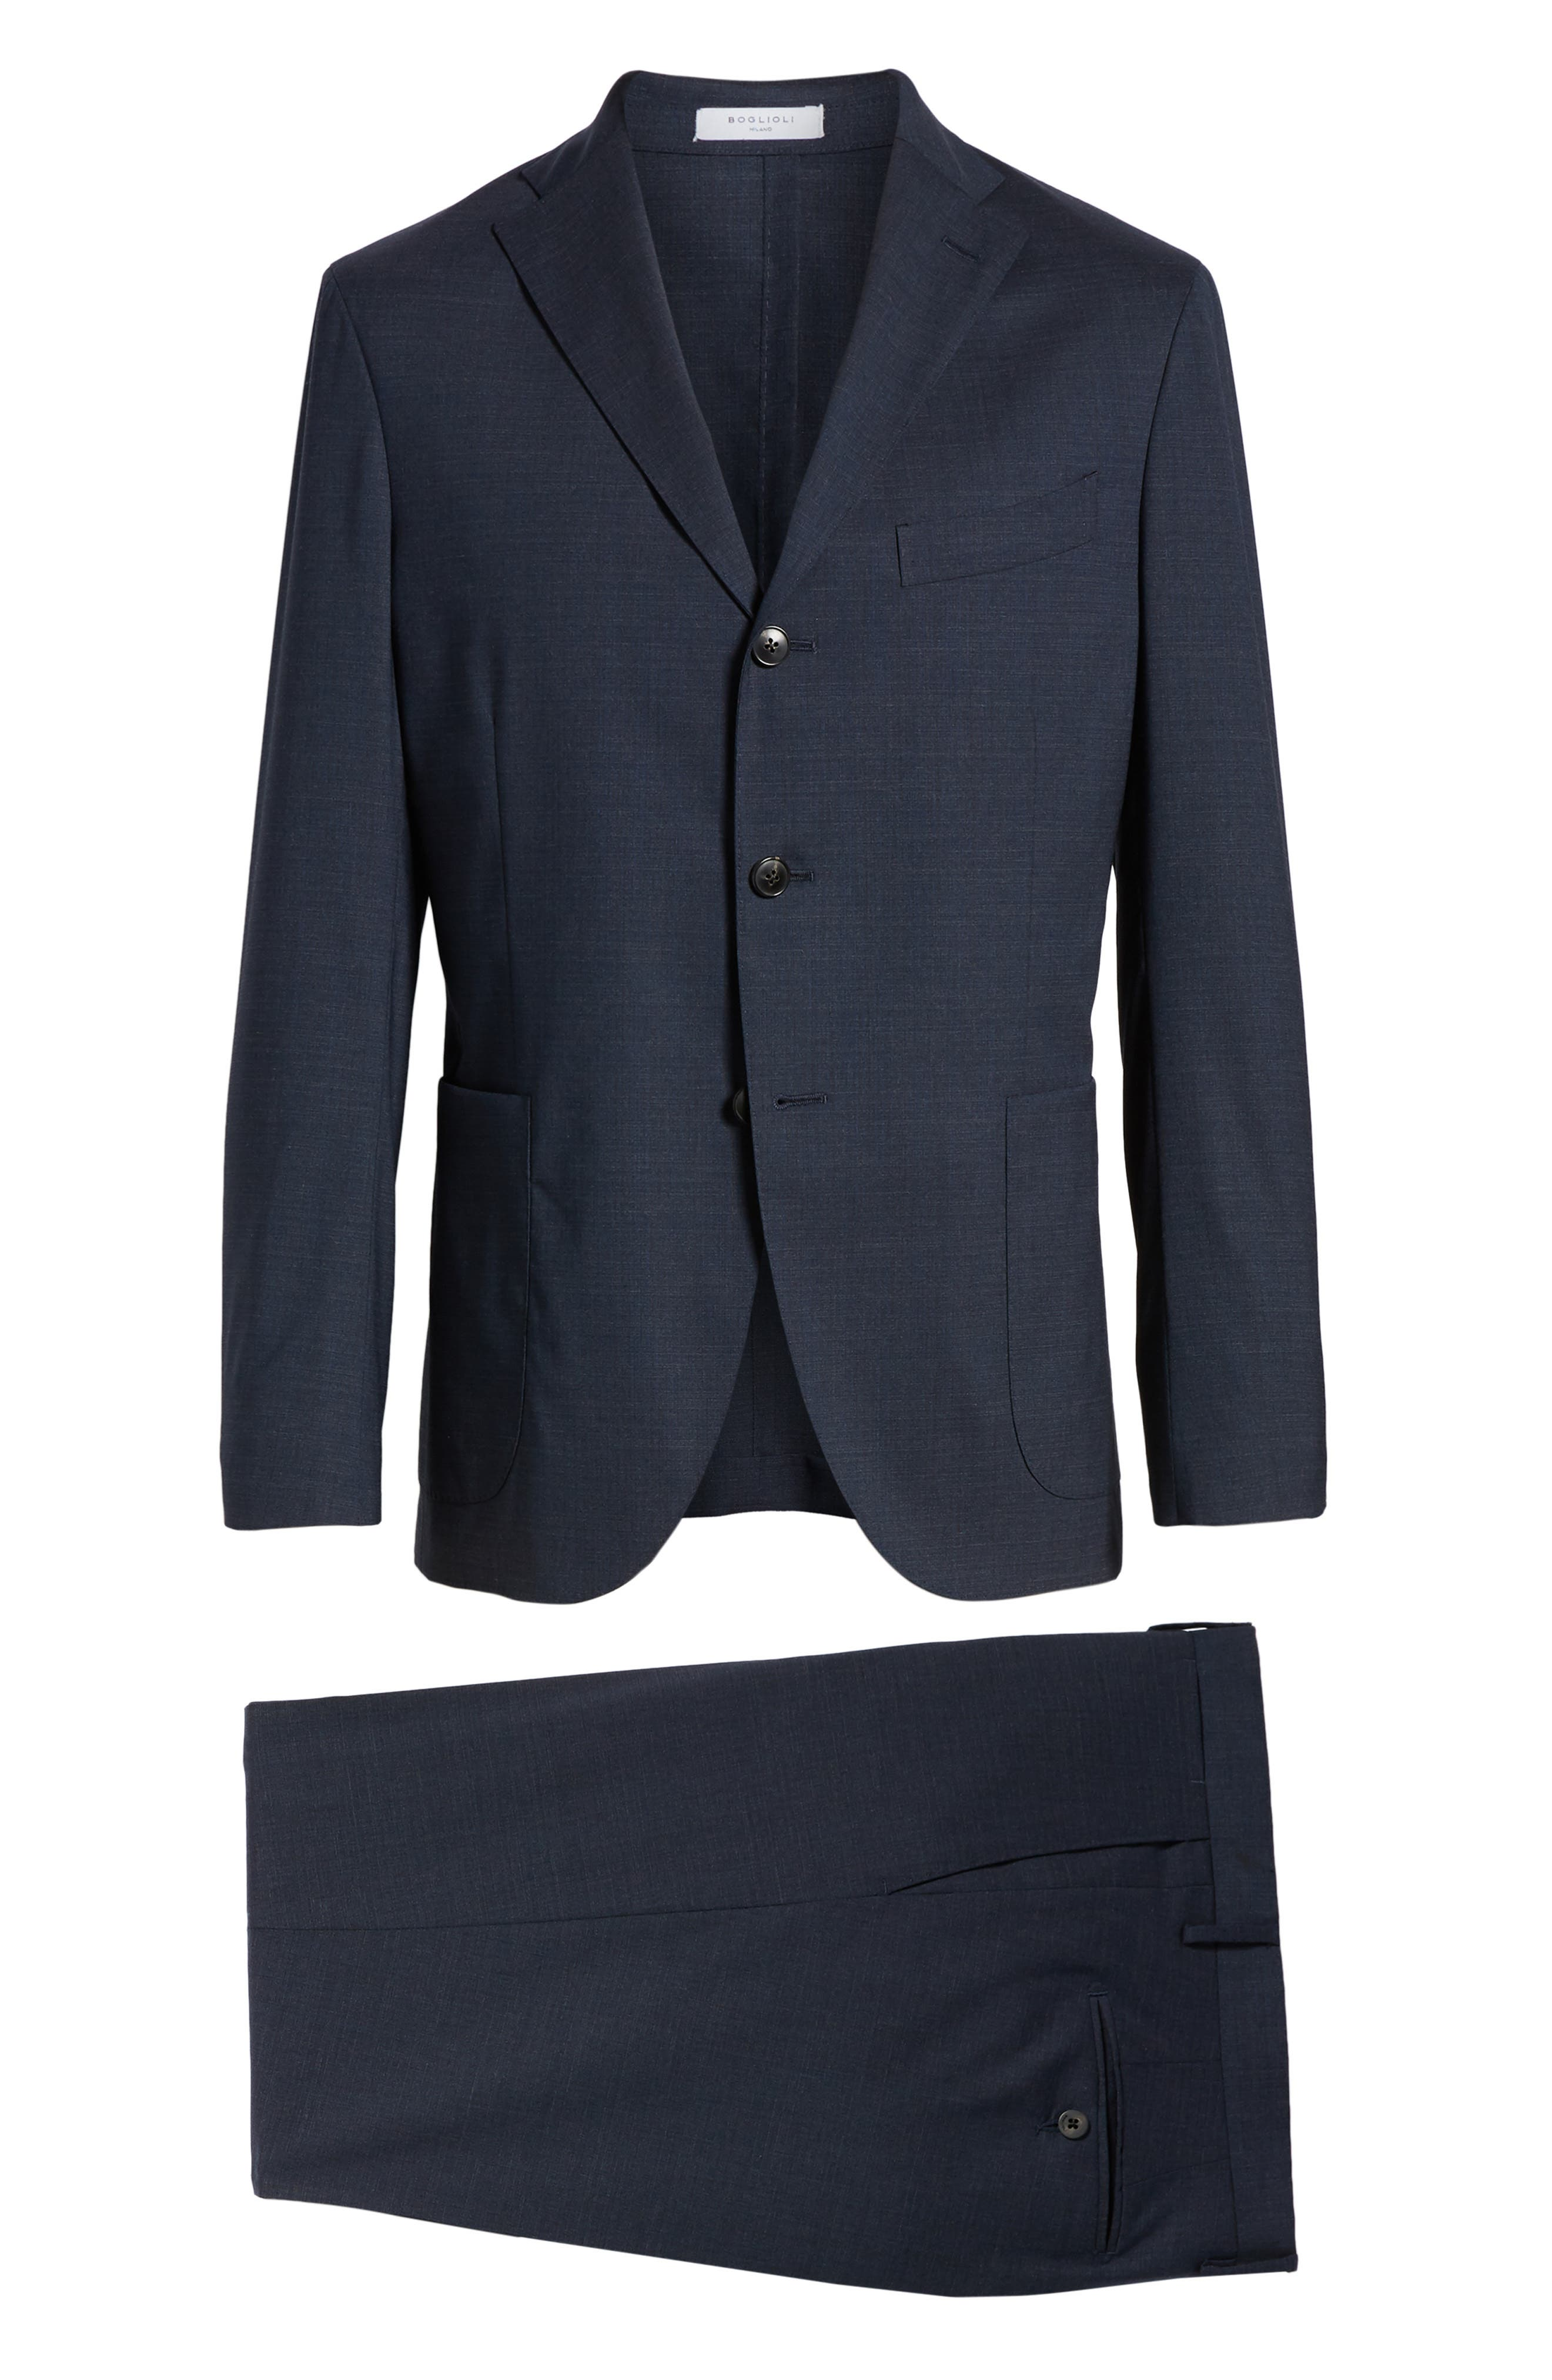 Trim Fit Stretch Solid Wool Suit,                             Alternate thumbnail 8, color,                             NAVY